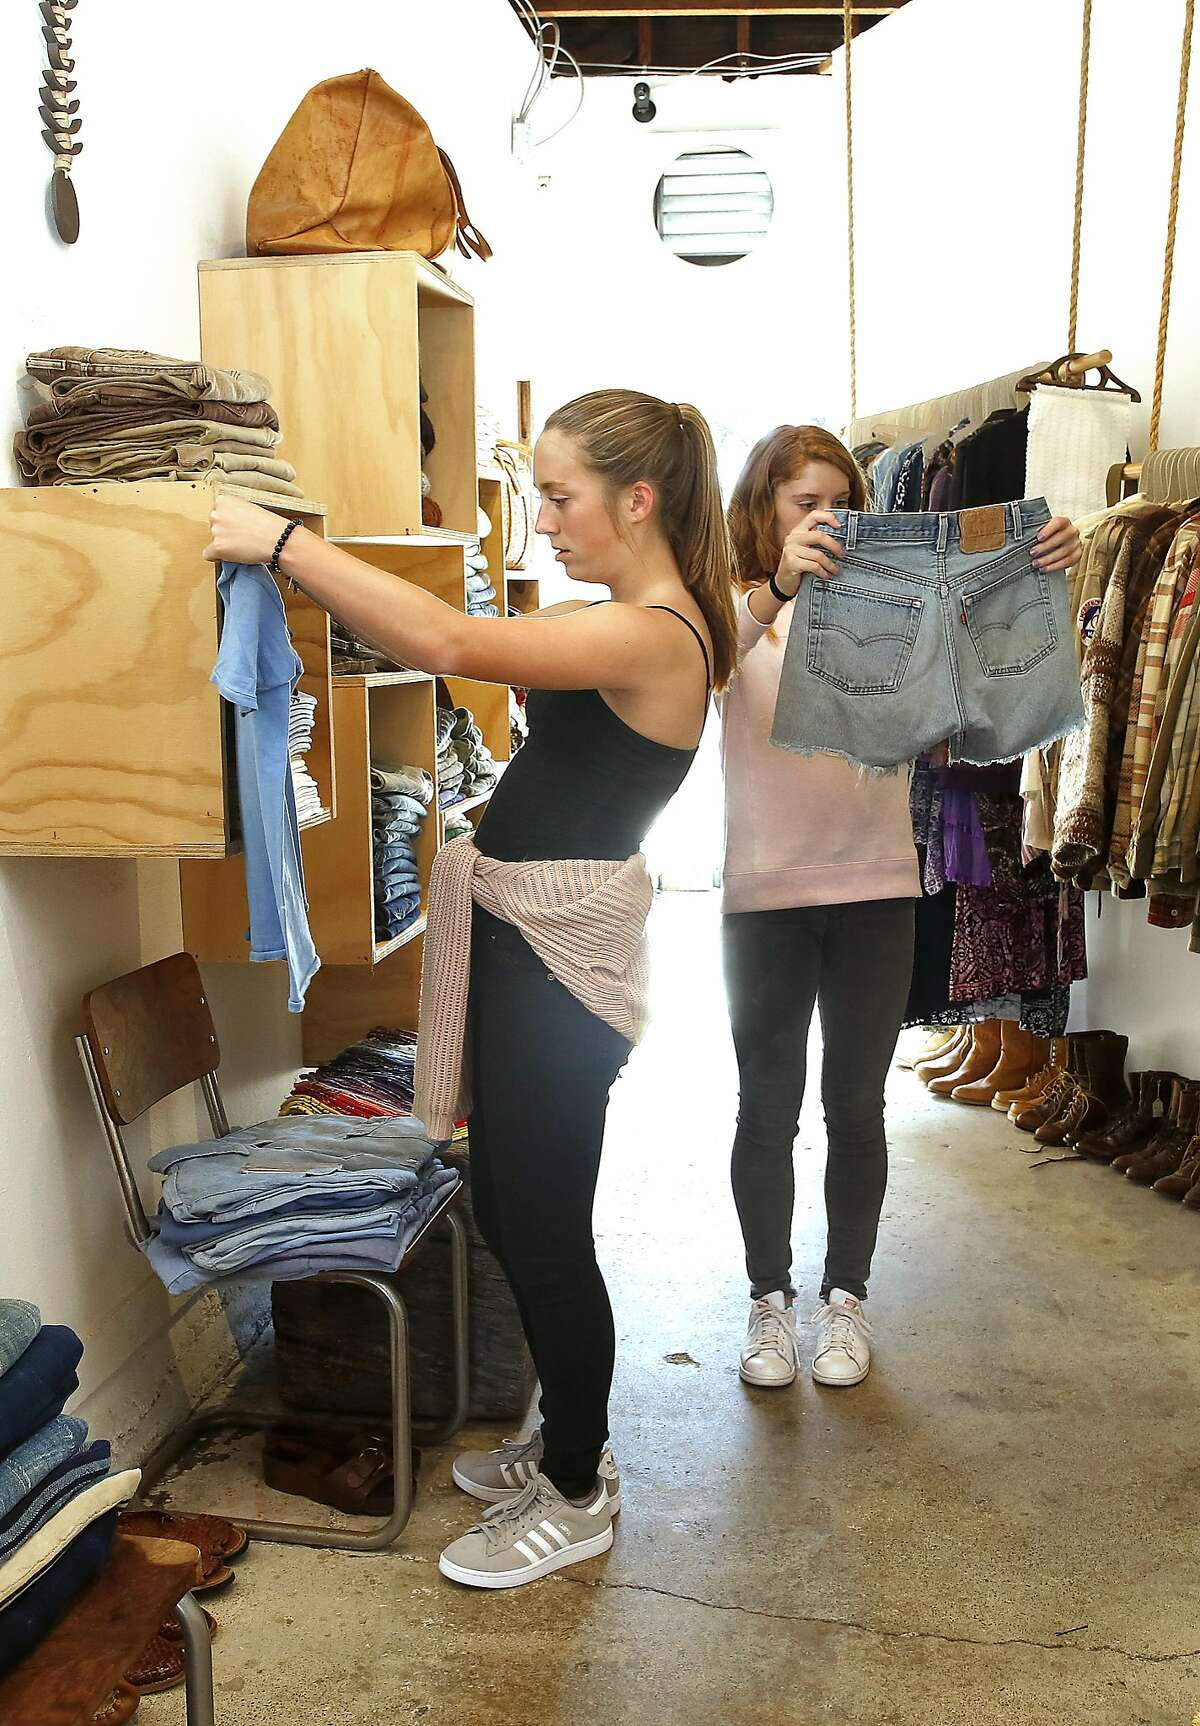 Claire Crowley (left), 14 years old, and her twin sister Madeline Crowley (middle right) shop at General Store on Wednesday, September 14, 2016, in San Francisco, Calif.